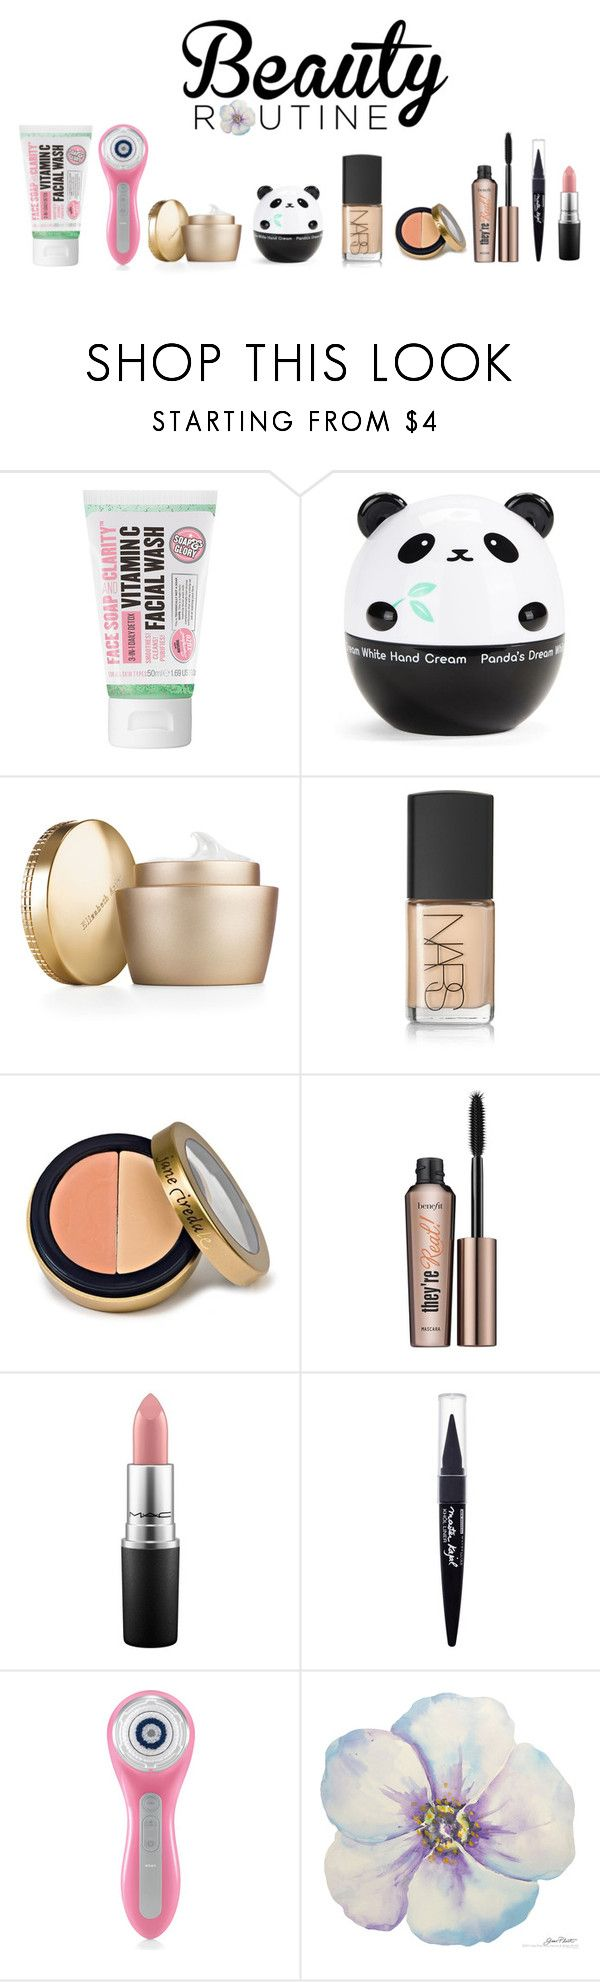 """""""What's Your Morning Beauty Routine?"""" by ice058 ❤ liked on Polyvore featuring beauty, Soap & Glory, Tony Moly, Elizabeth Arden, NARS Cosmetics, Jane Iredale, Benefit, MAC Cosmetics, Maybelline and Clarisonic"""